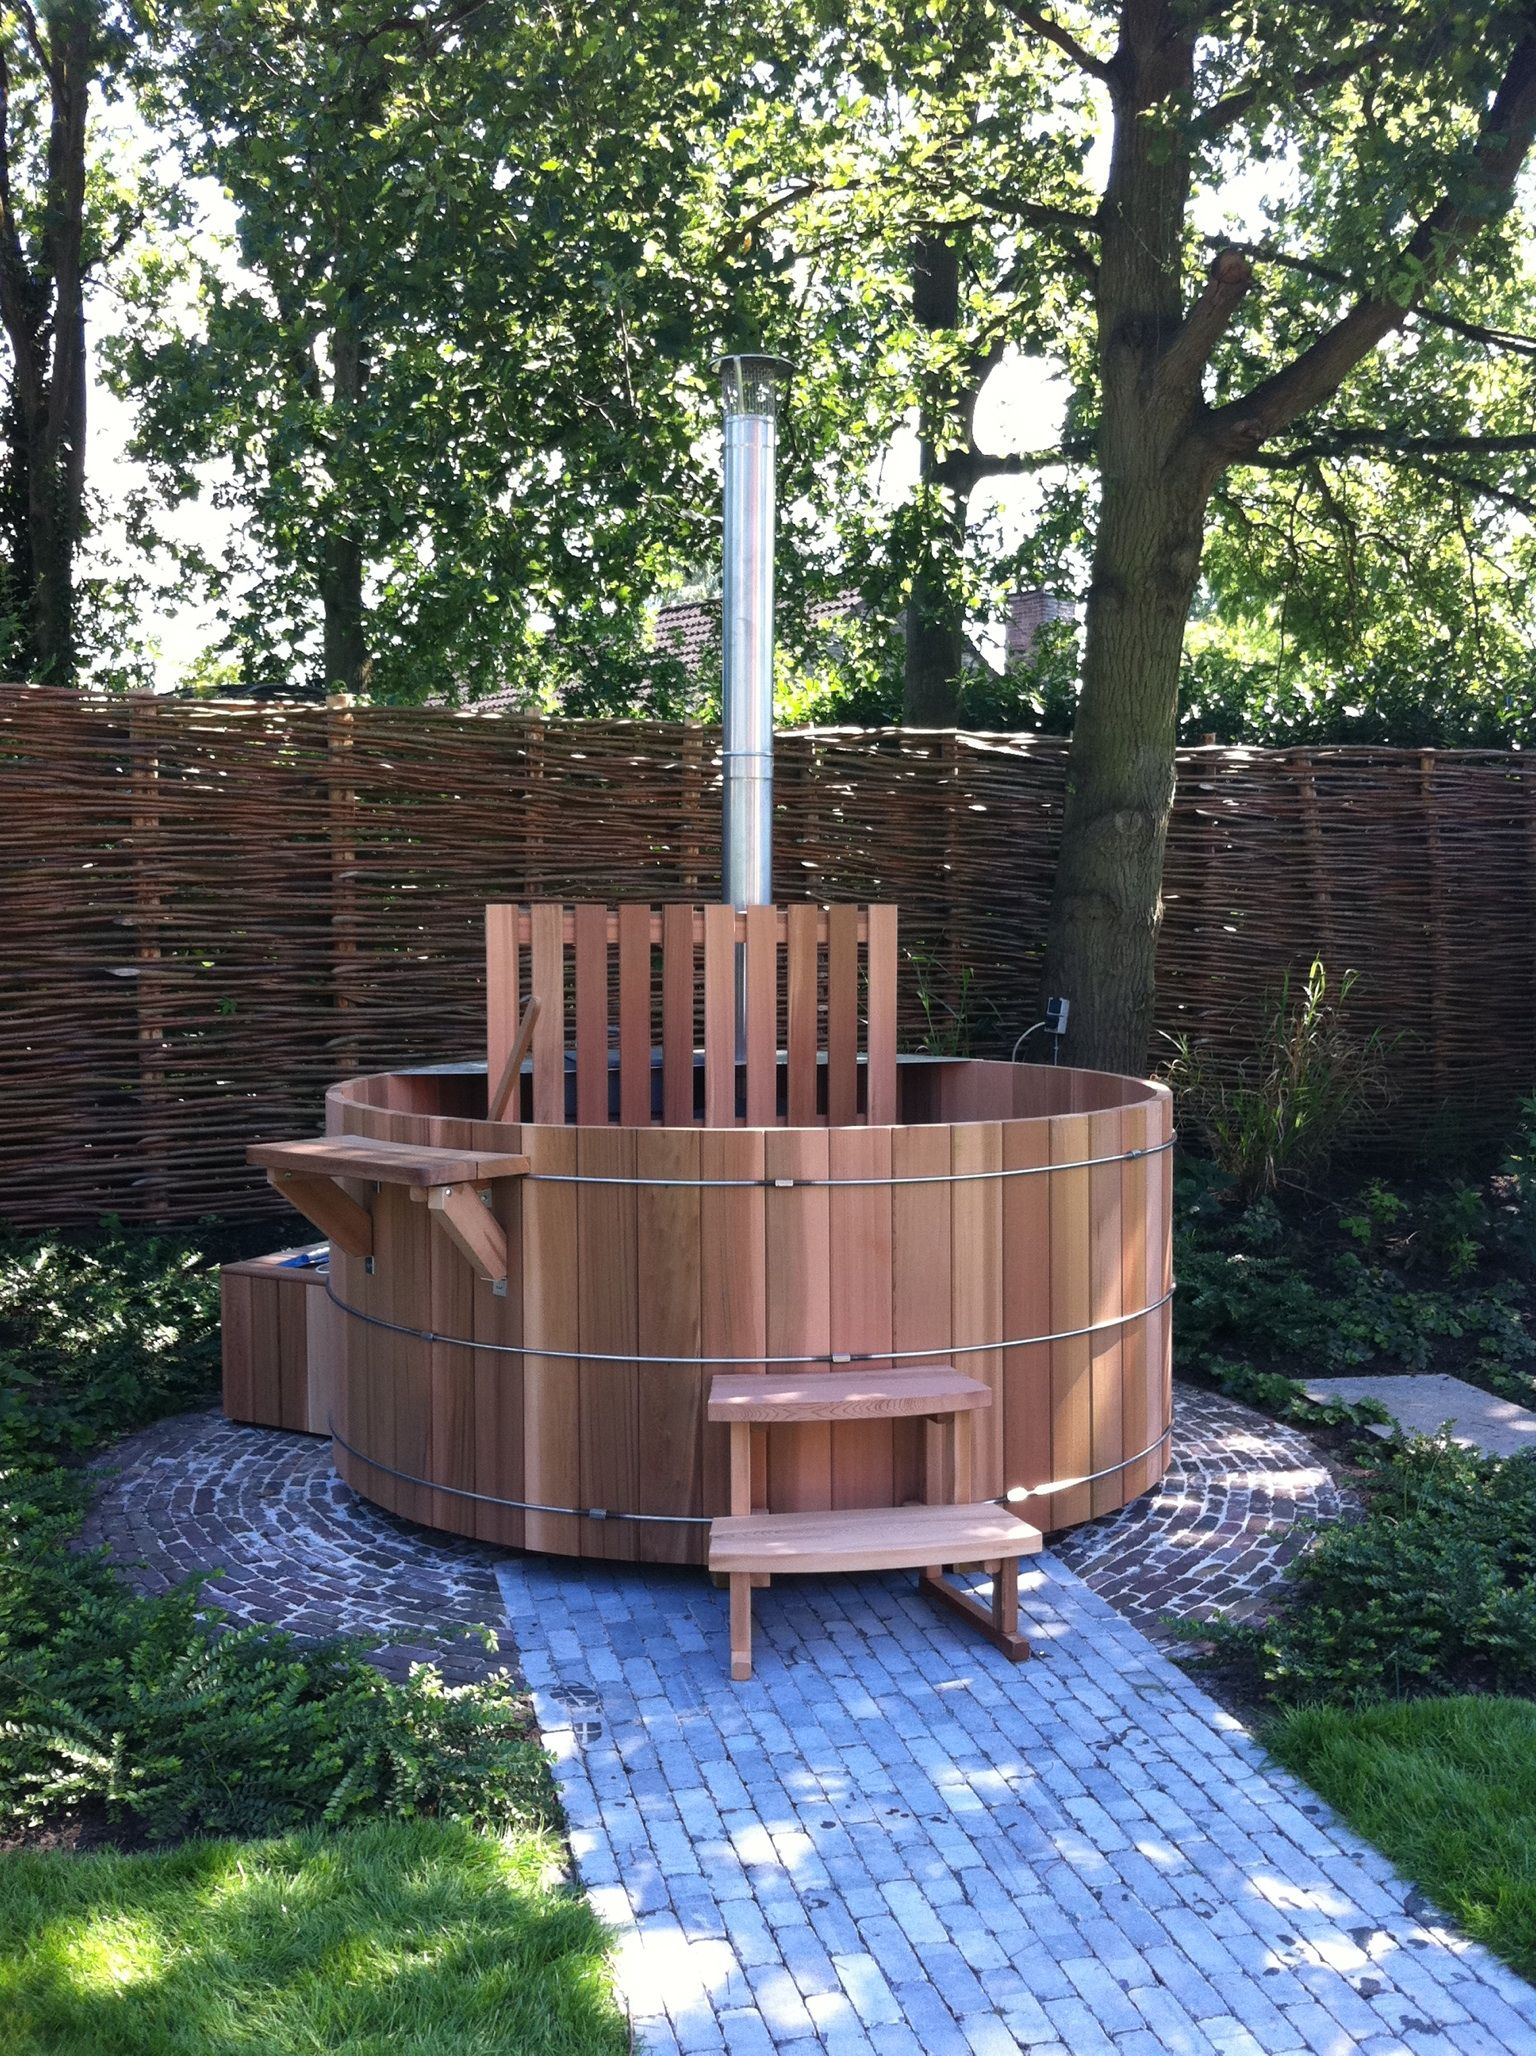 Hottub In De Tuin Saunabarrel Hottub Houtgestookt Bad Fire Hot Tup Pinterest